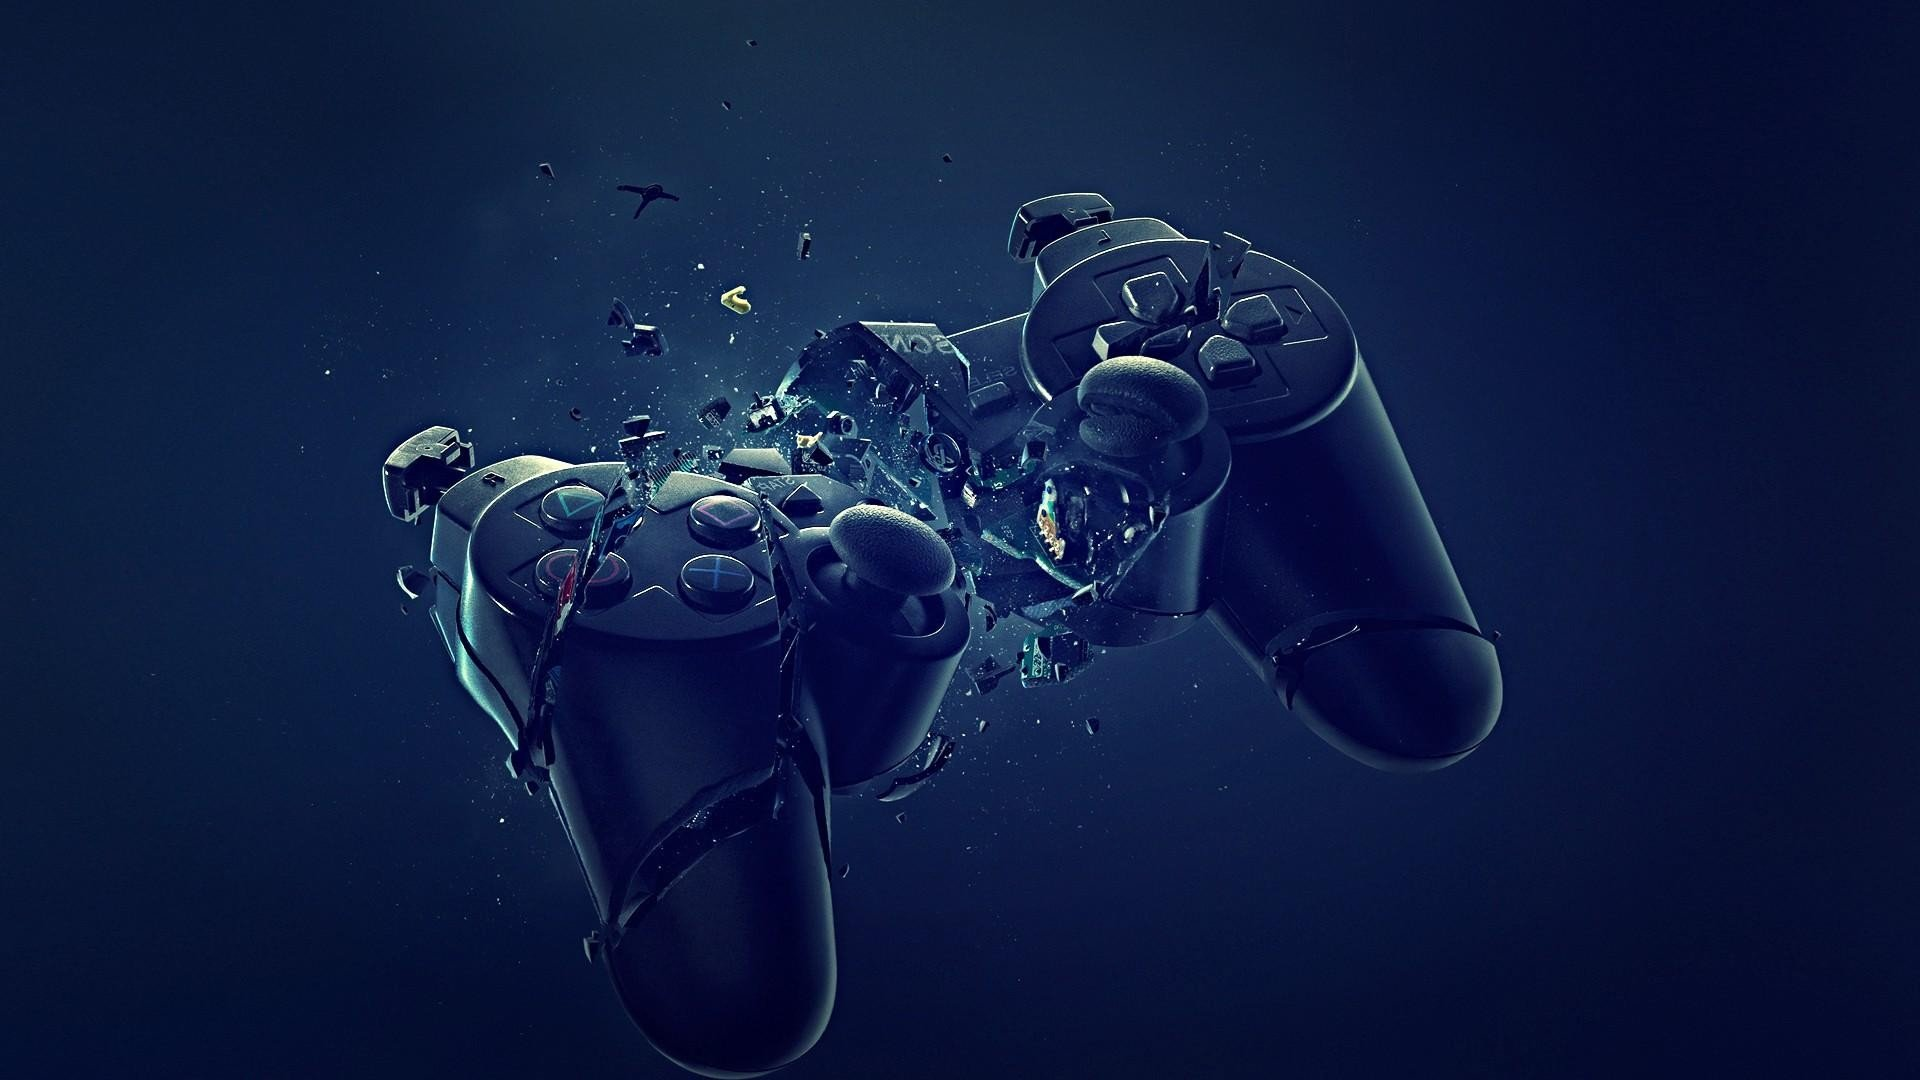 Abstract Blue Black Dark Broken PlayStation Joysticks